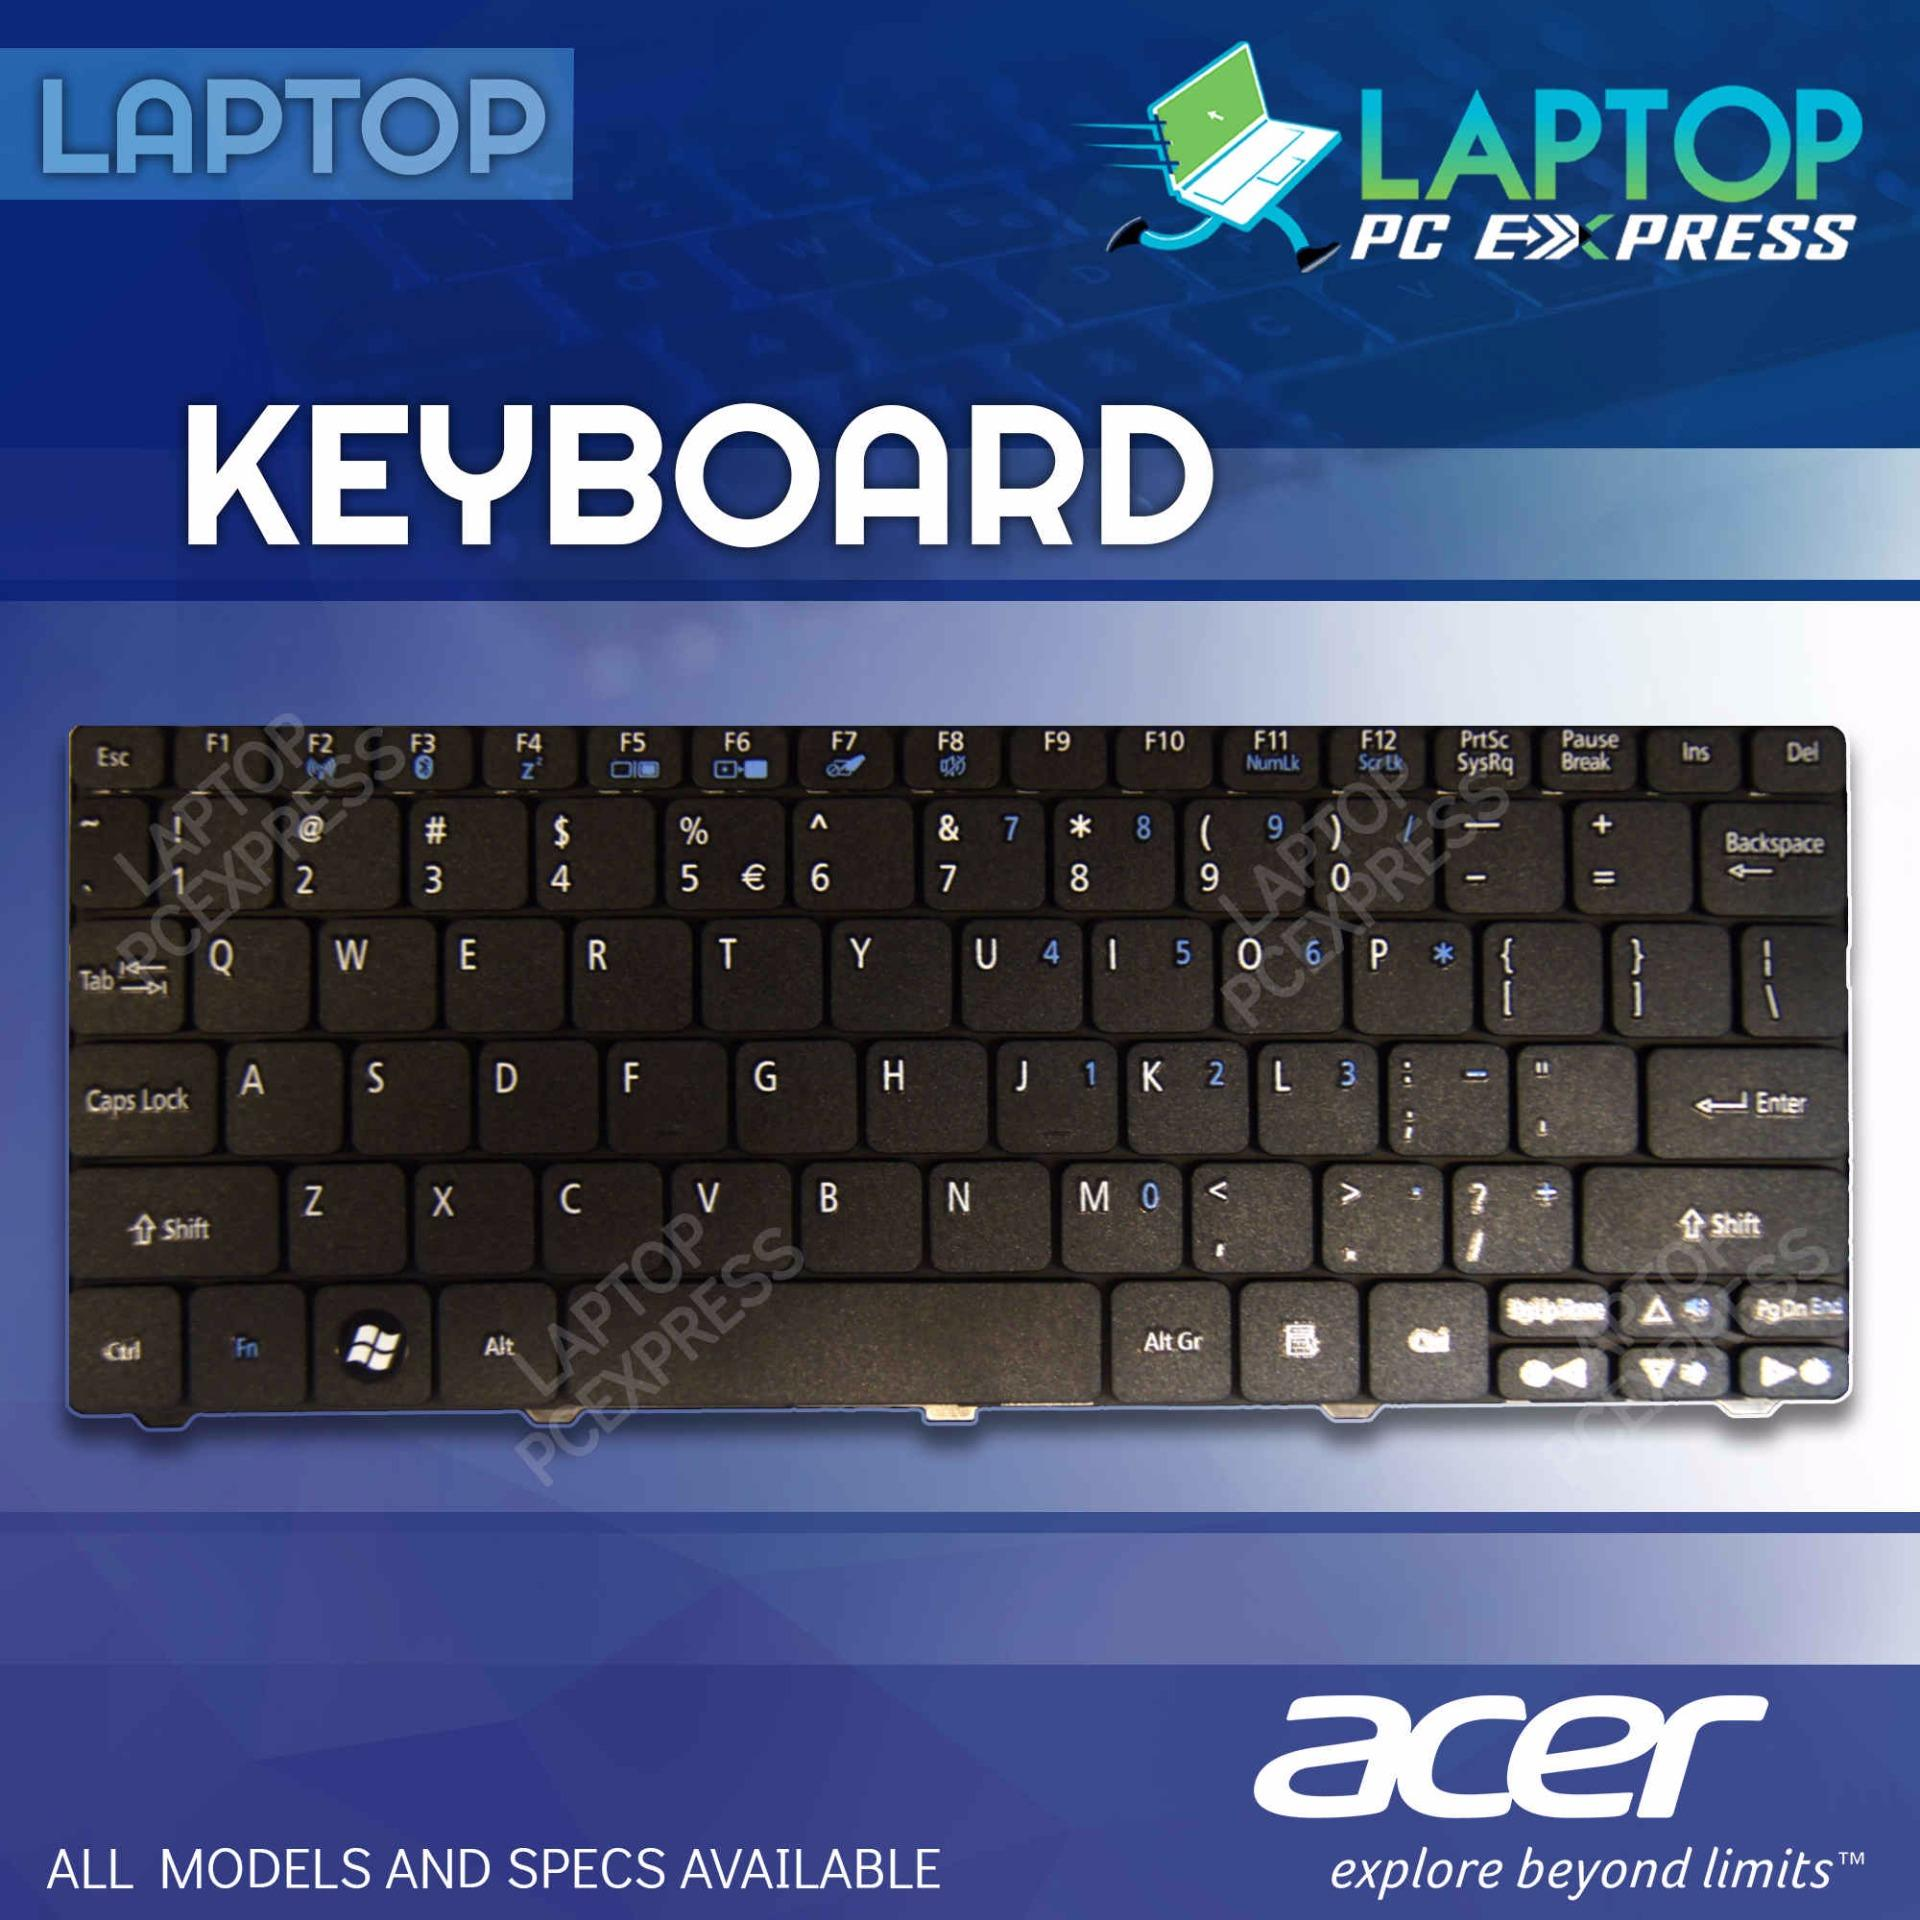 Laptop Acer Keyboard Aspire One 521 522 533 D255 D255E D257 D260 D270 Philippines